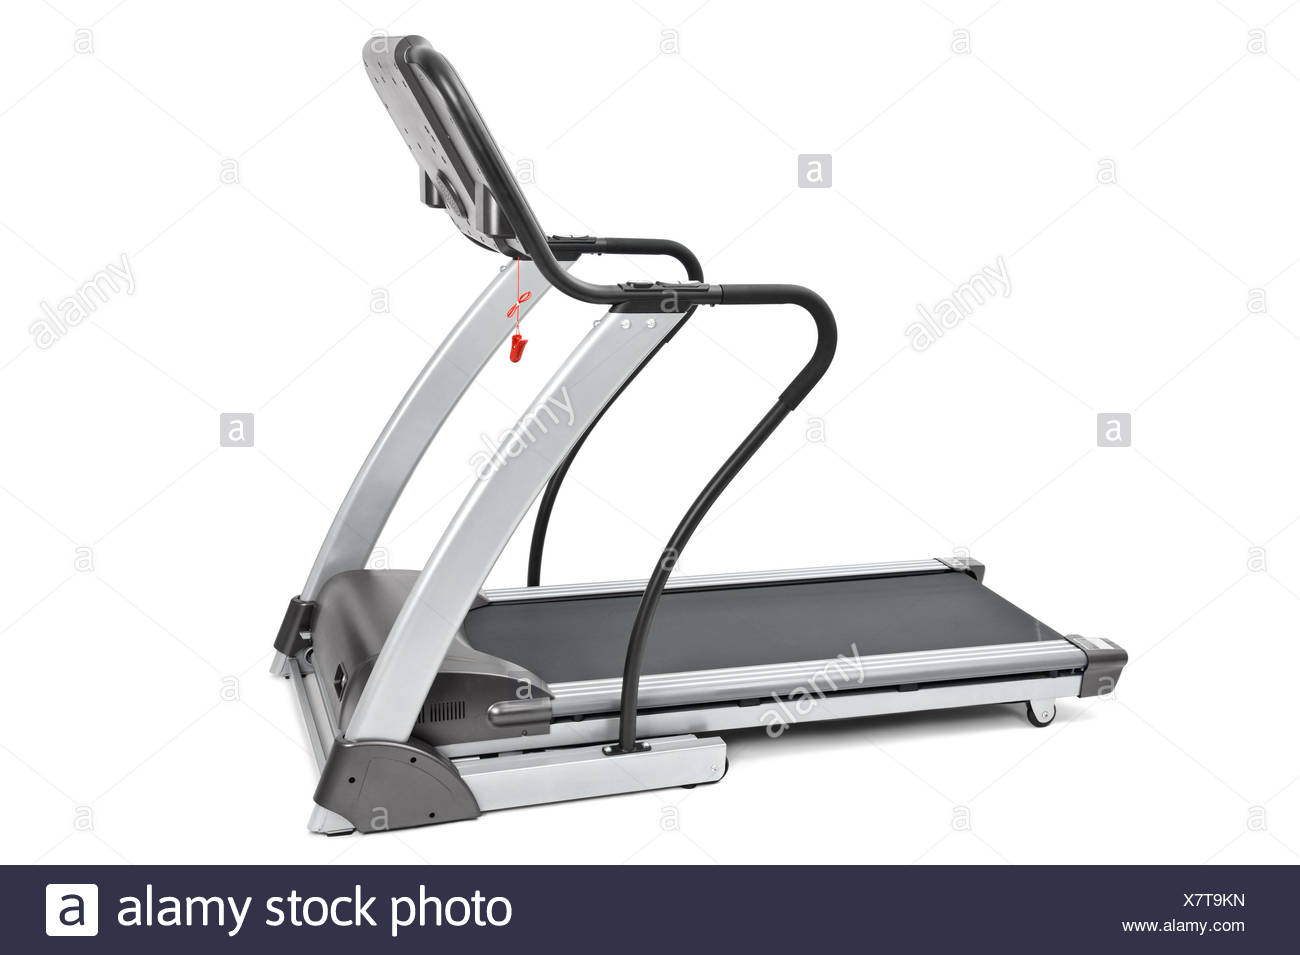 gym equipment, spinning machine for cardio workouts - Stock Image